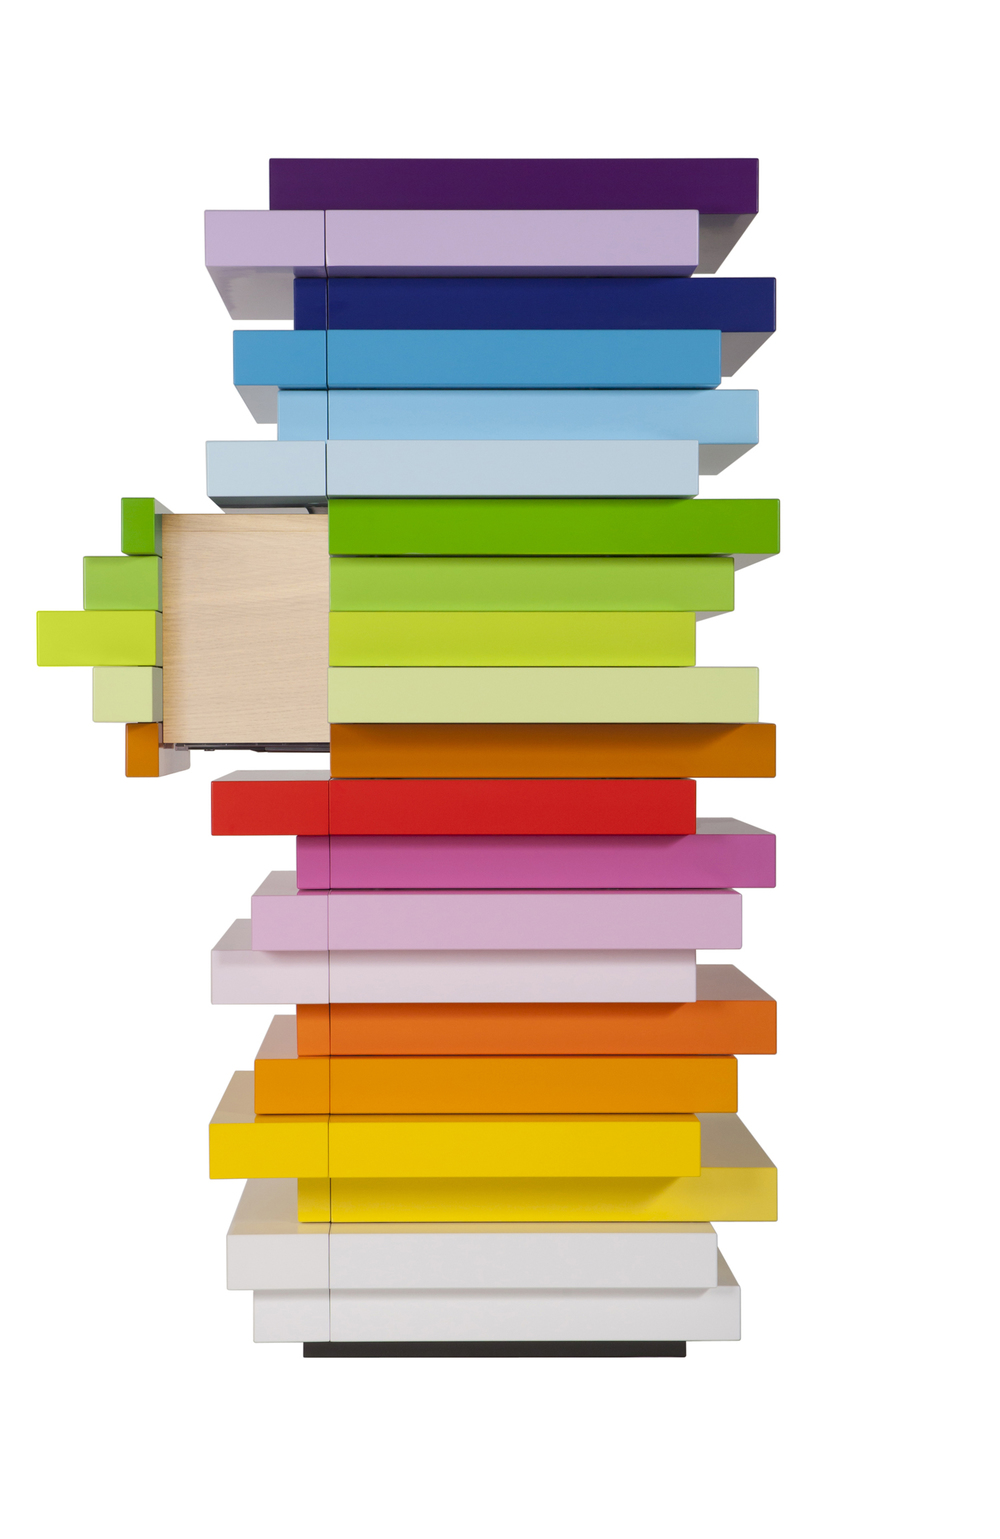 4_shikiri_millefeuille_storage_by_emmanuelle_moureaux_for_schoenbuch_french_design_japanese_furniture_color_in_interiors_francuski_design_japonskie_meble_kolor_we_wnetrzach